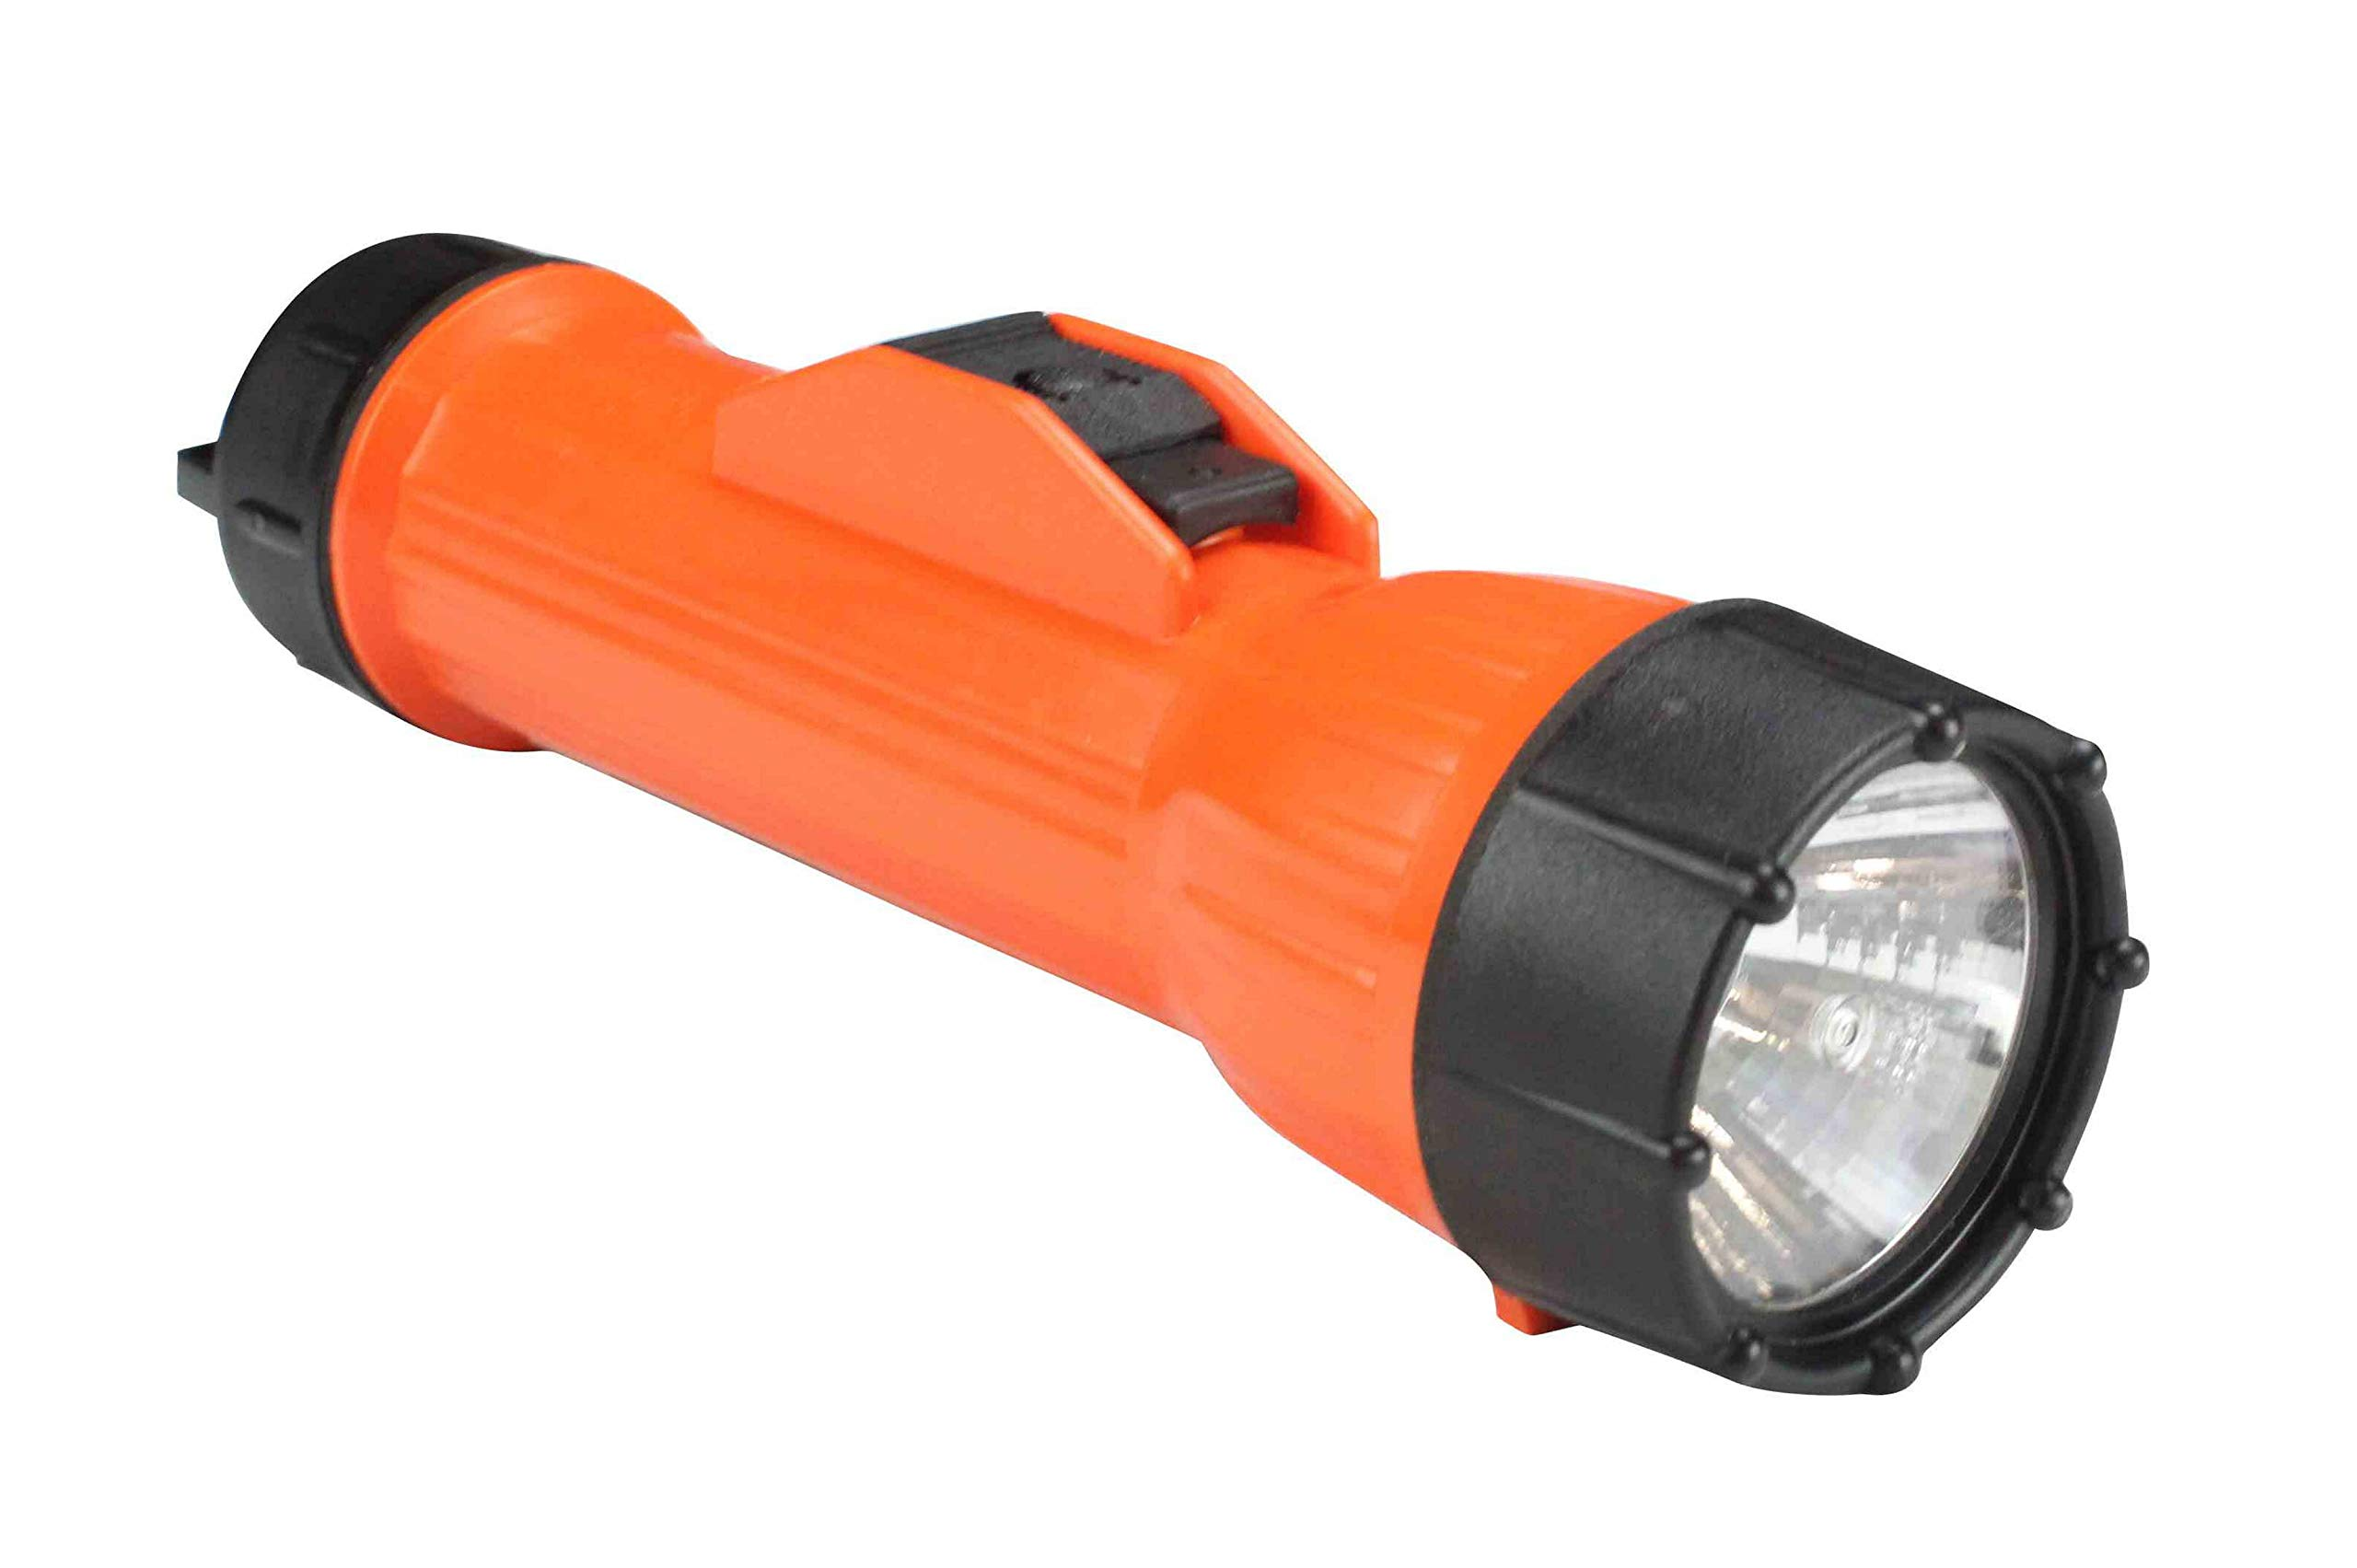 Explosion Proof LED Flashlight - 2 D-Cell - LE-217 - MADE IN THE USA - Waterproof Flashlight by Larson Electronics